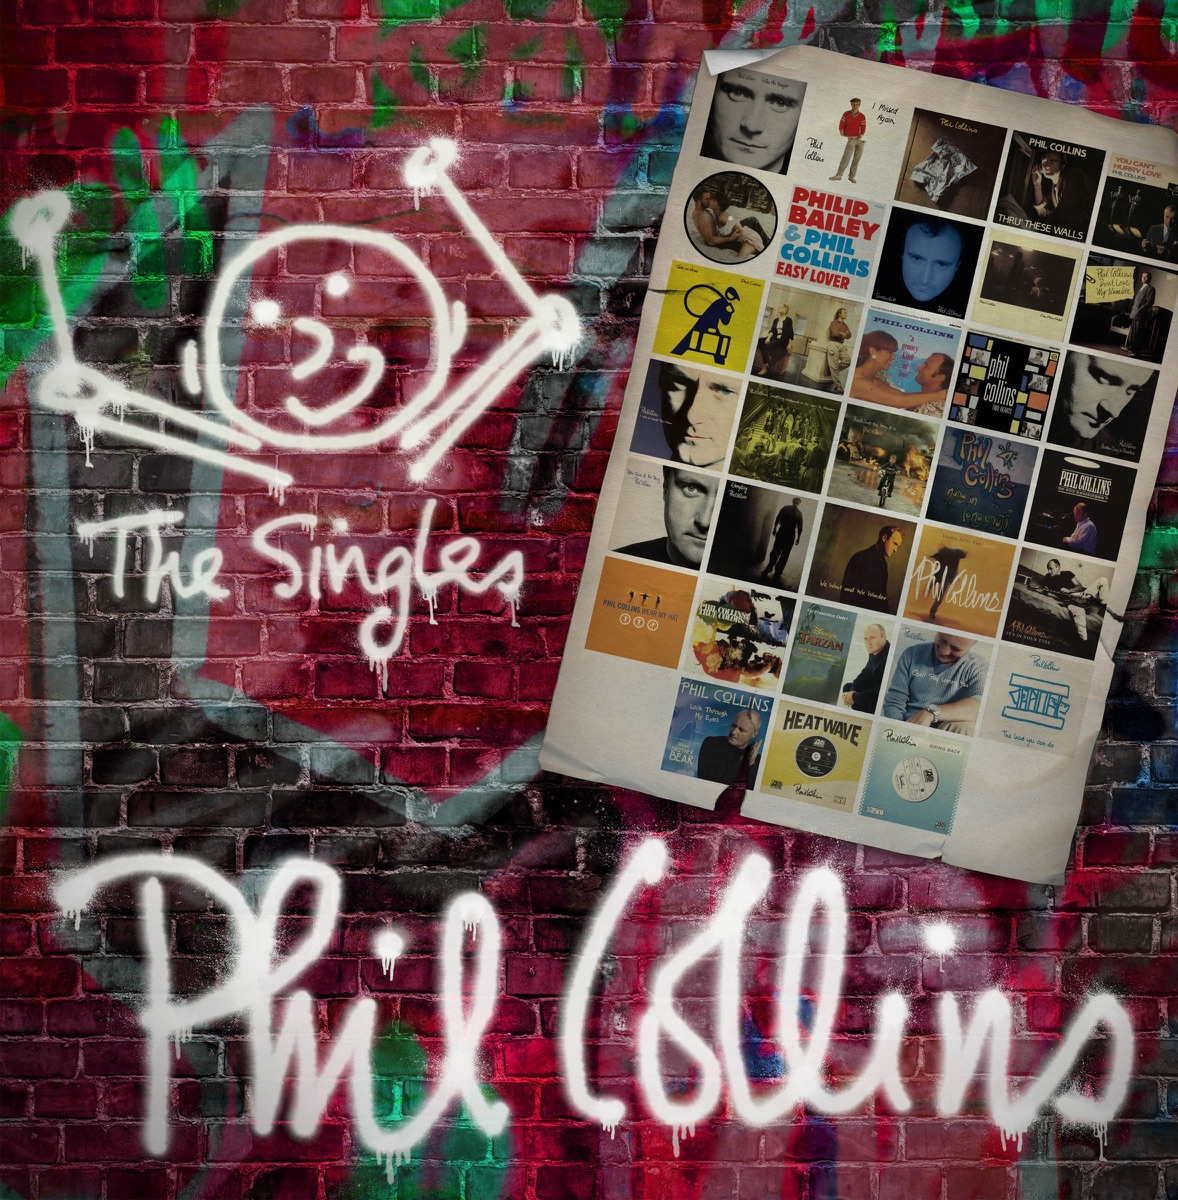 The Singles Expanded Phil Collins CD cover